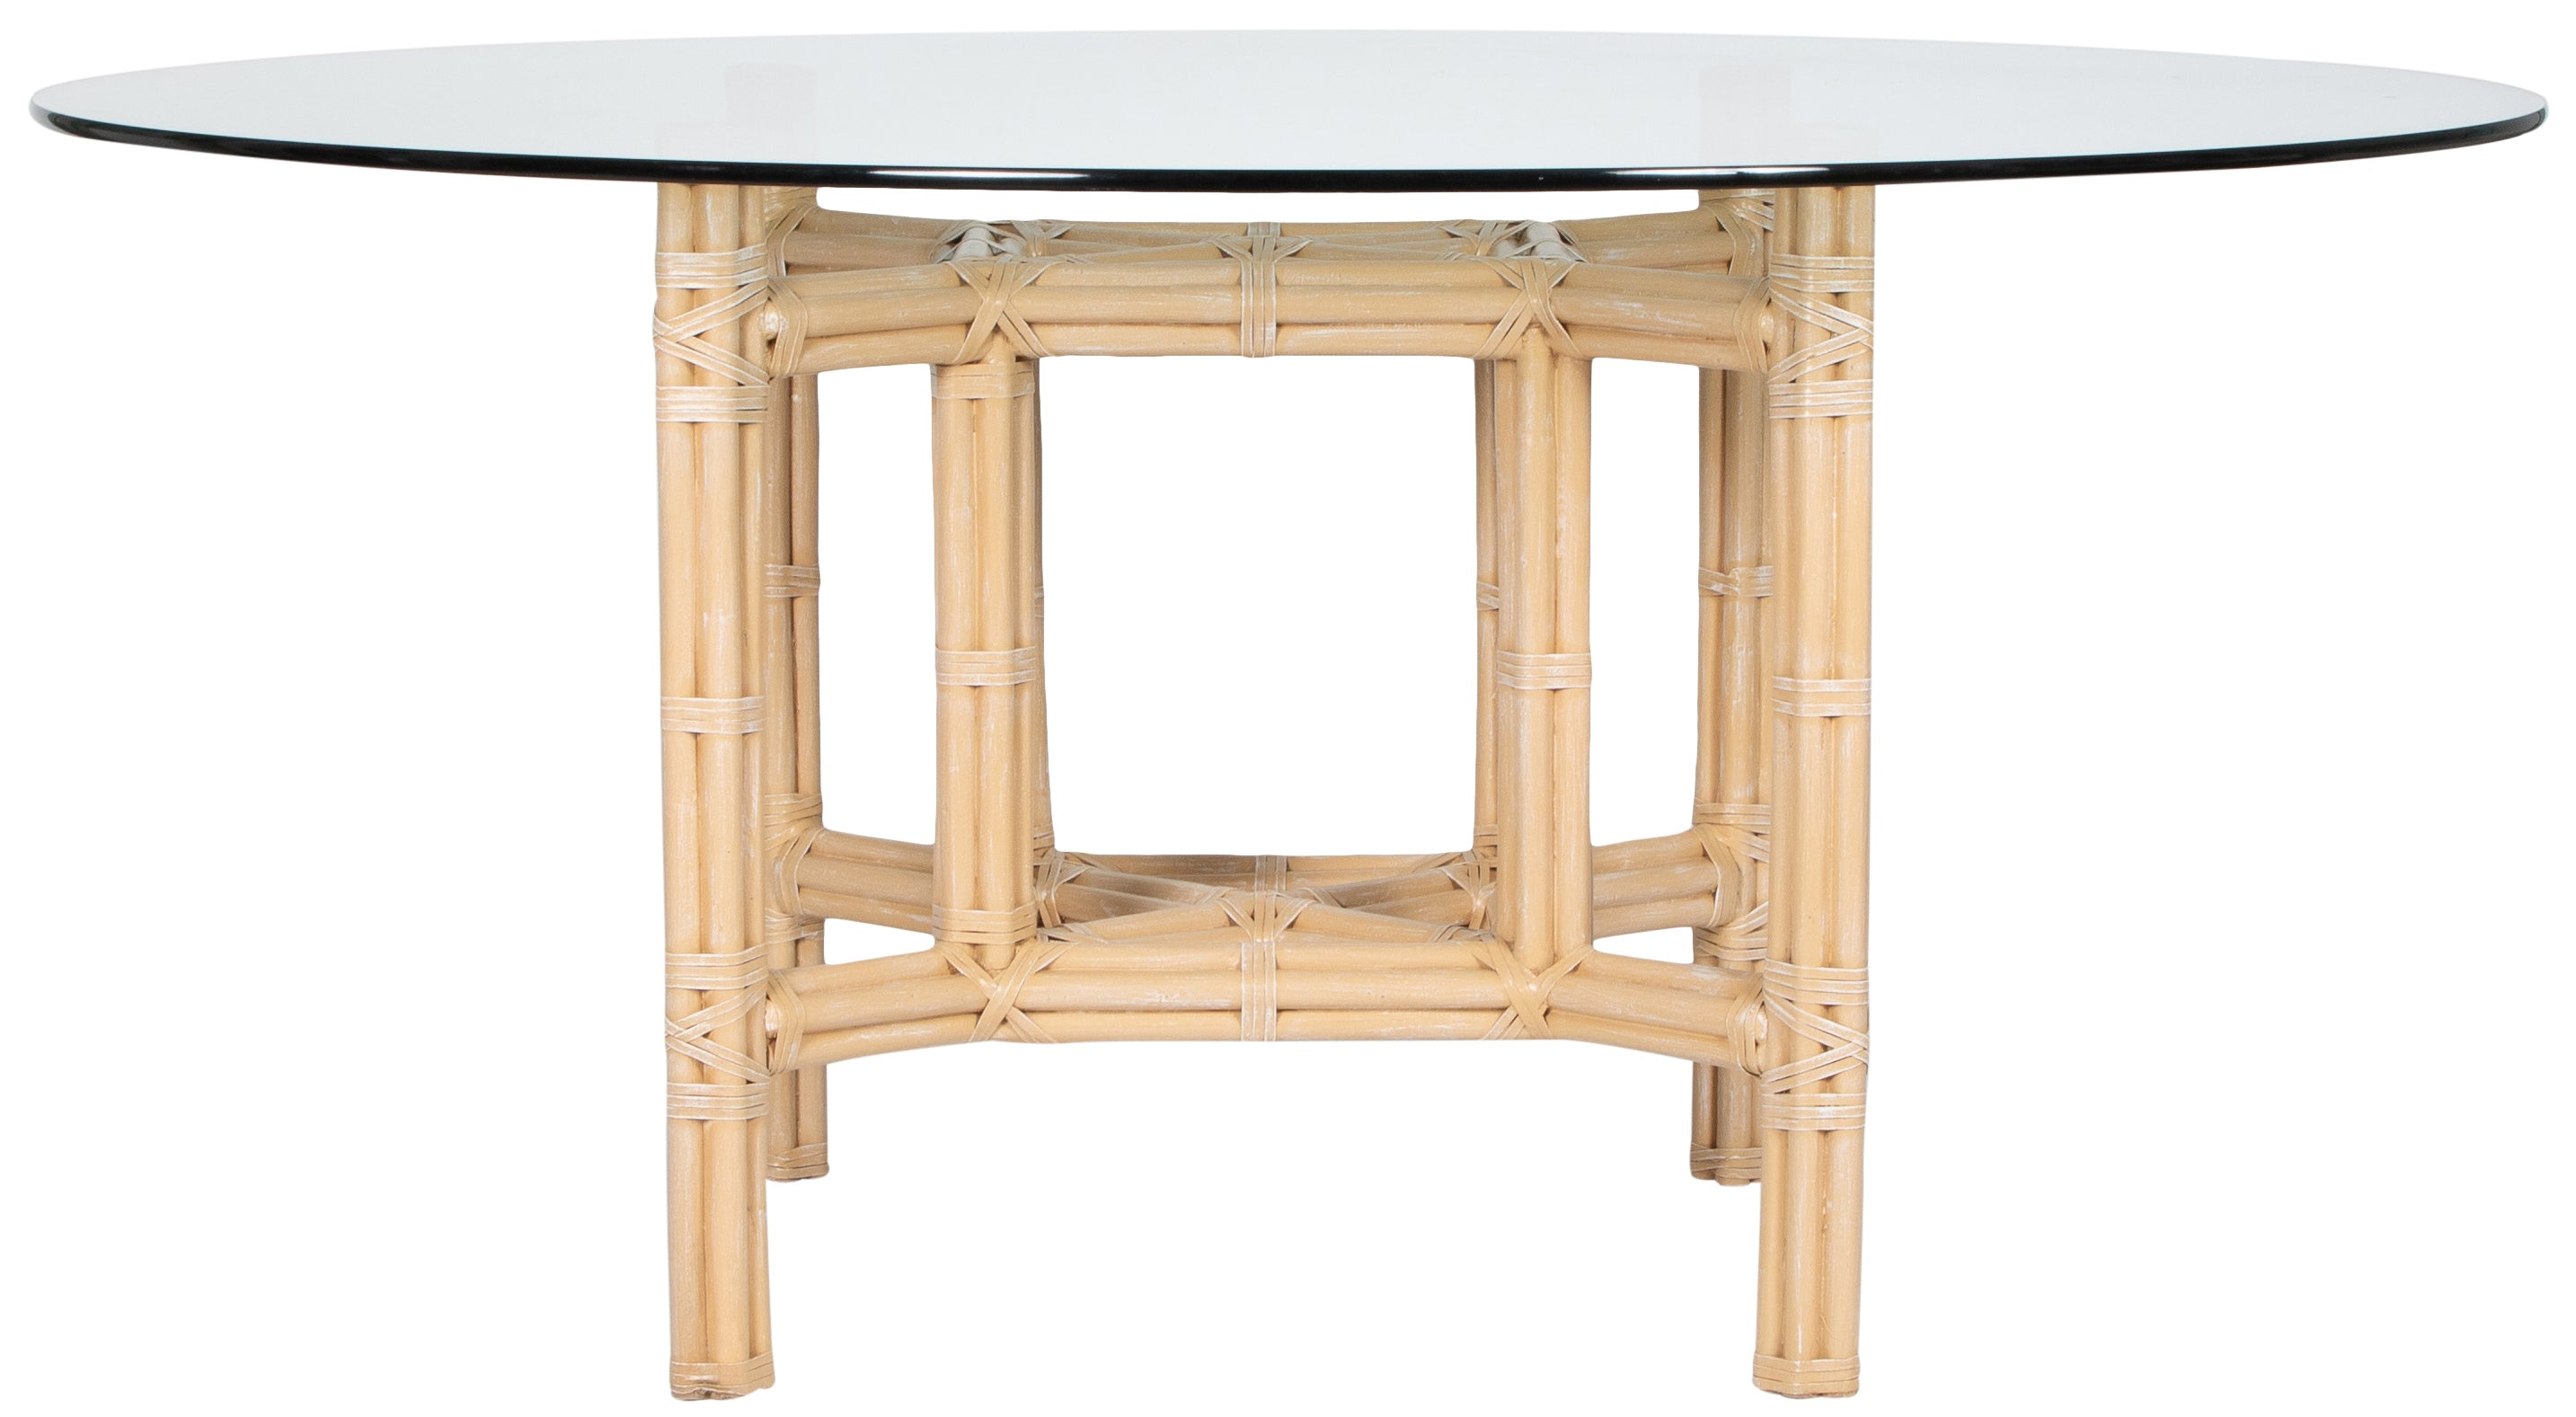 D1033-TB_Square_Rattan_Table_Base_Beach_Wood_With_Glass.jpg